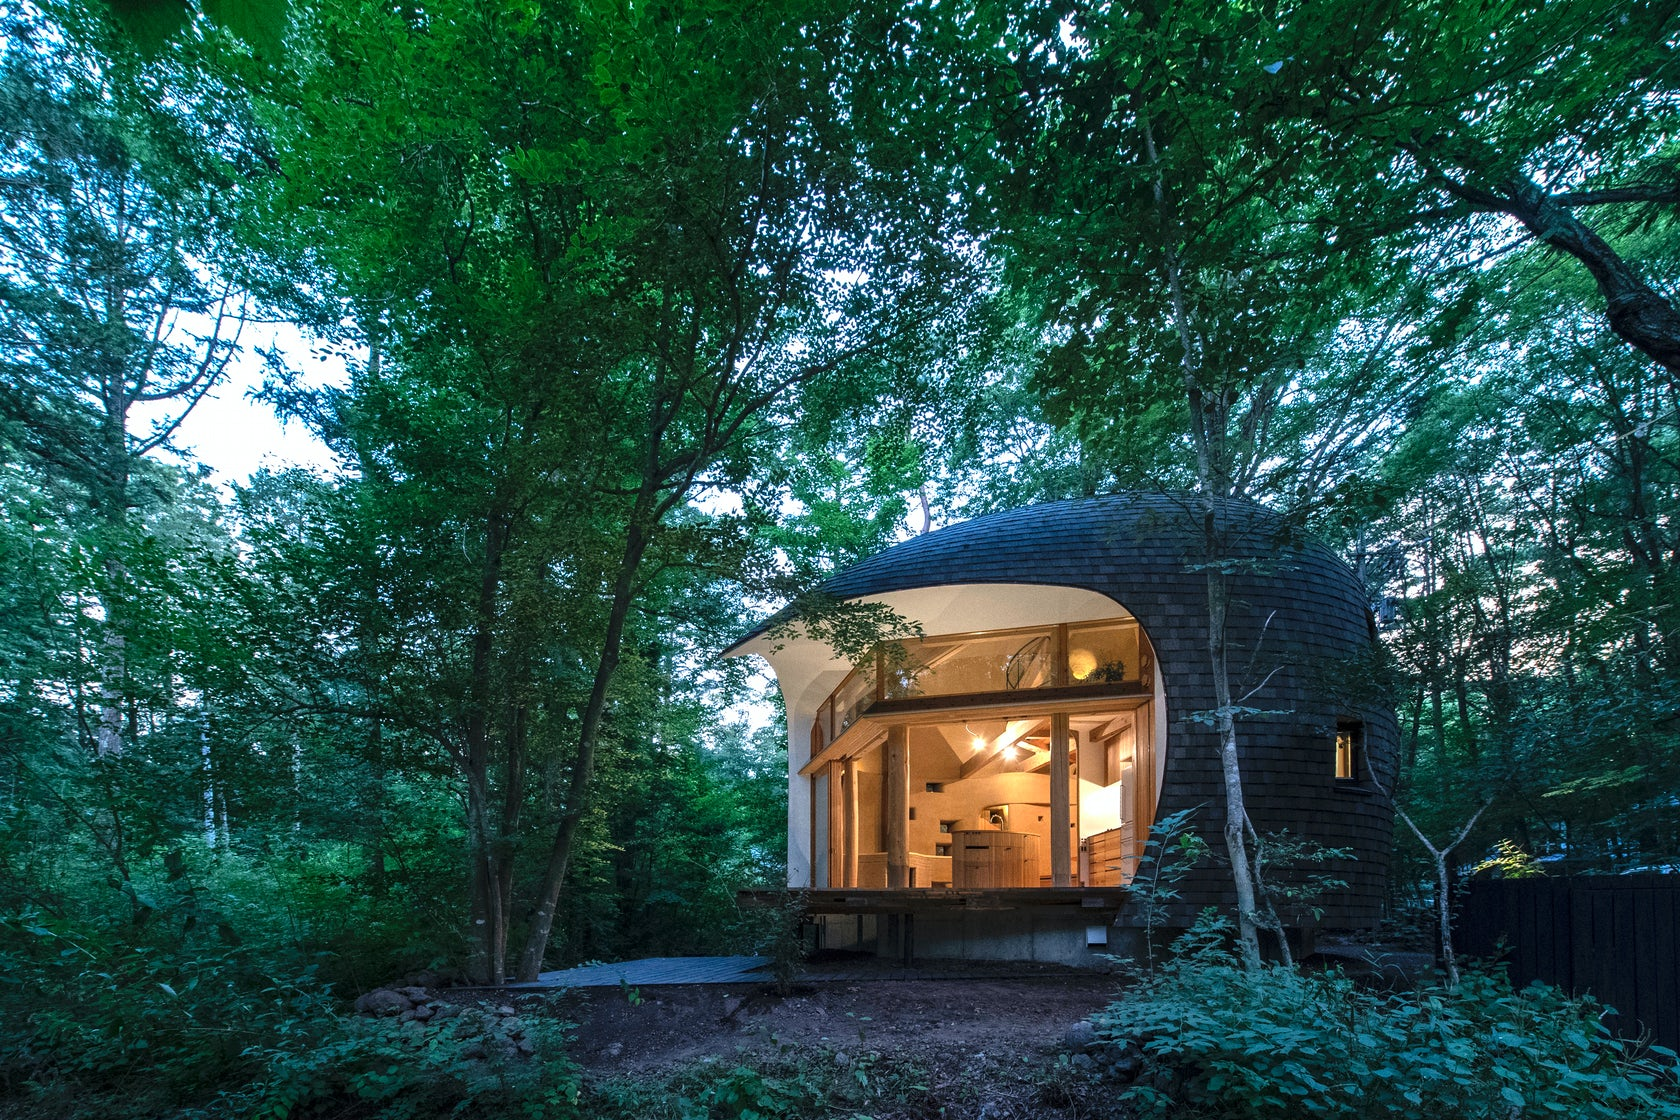 Shell House / The language of forest